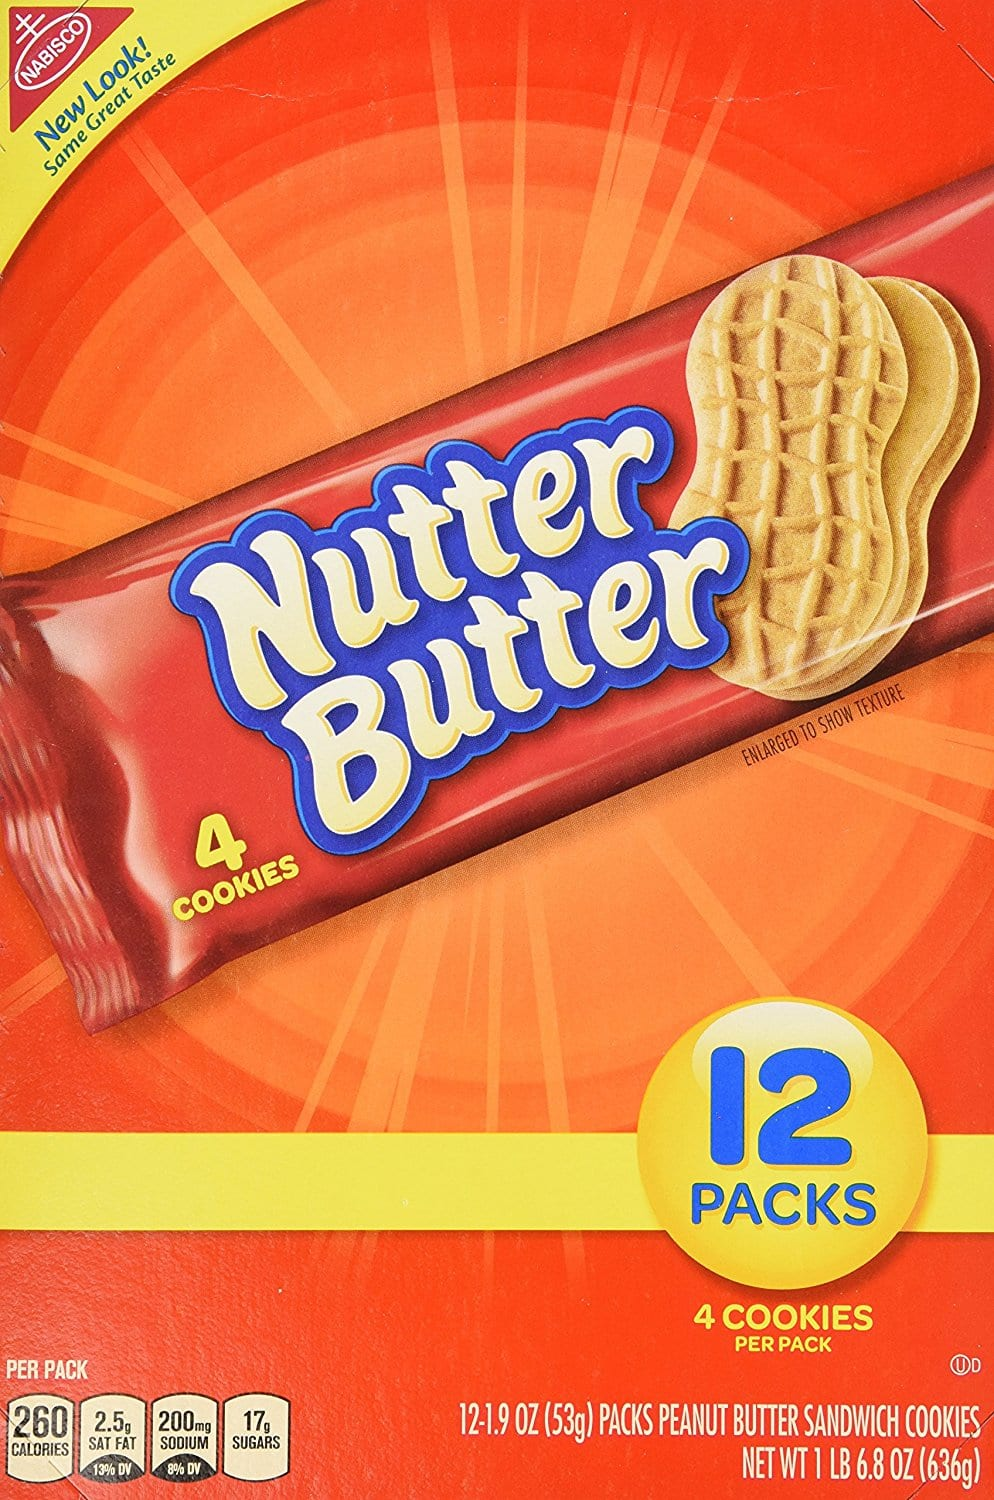 Nutter Butter Peanut Butter Sandwich, 1.9-Ounce Single Serve Bags (Pack of 48) $16.97 w/ Amazon 5 S&S items; $18.96 w/ less than 5.